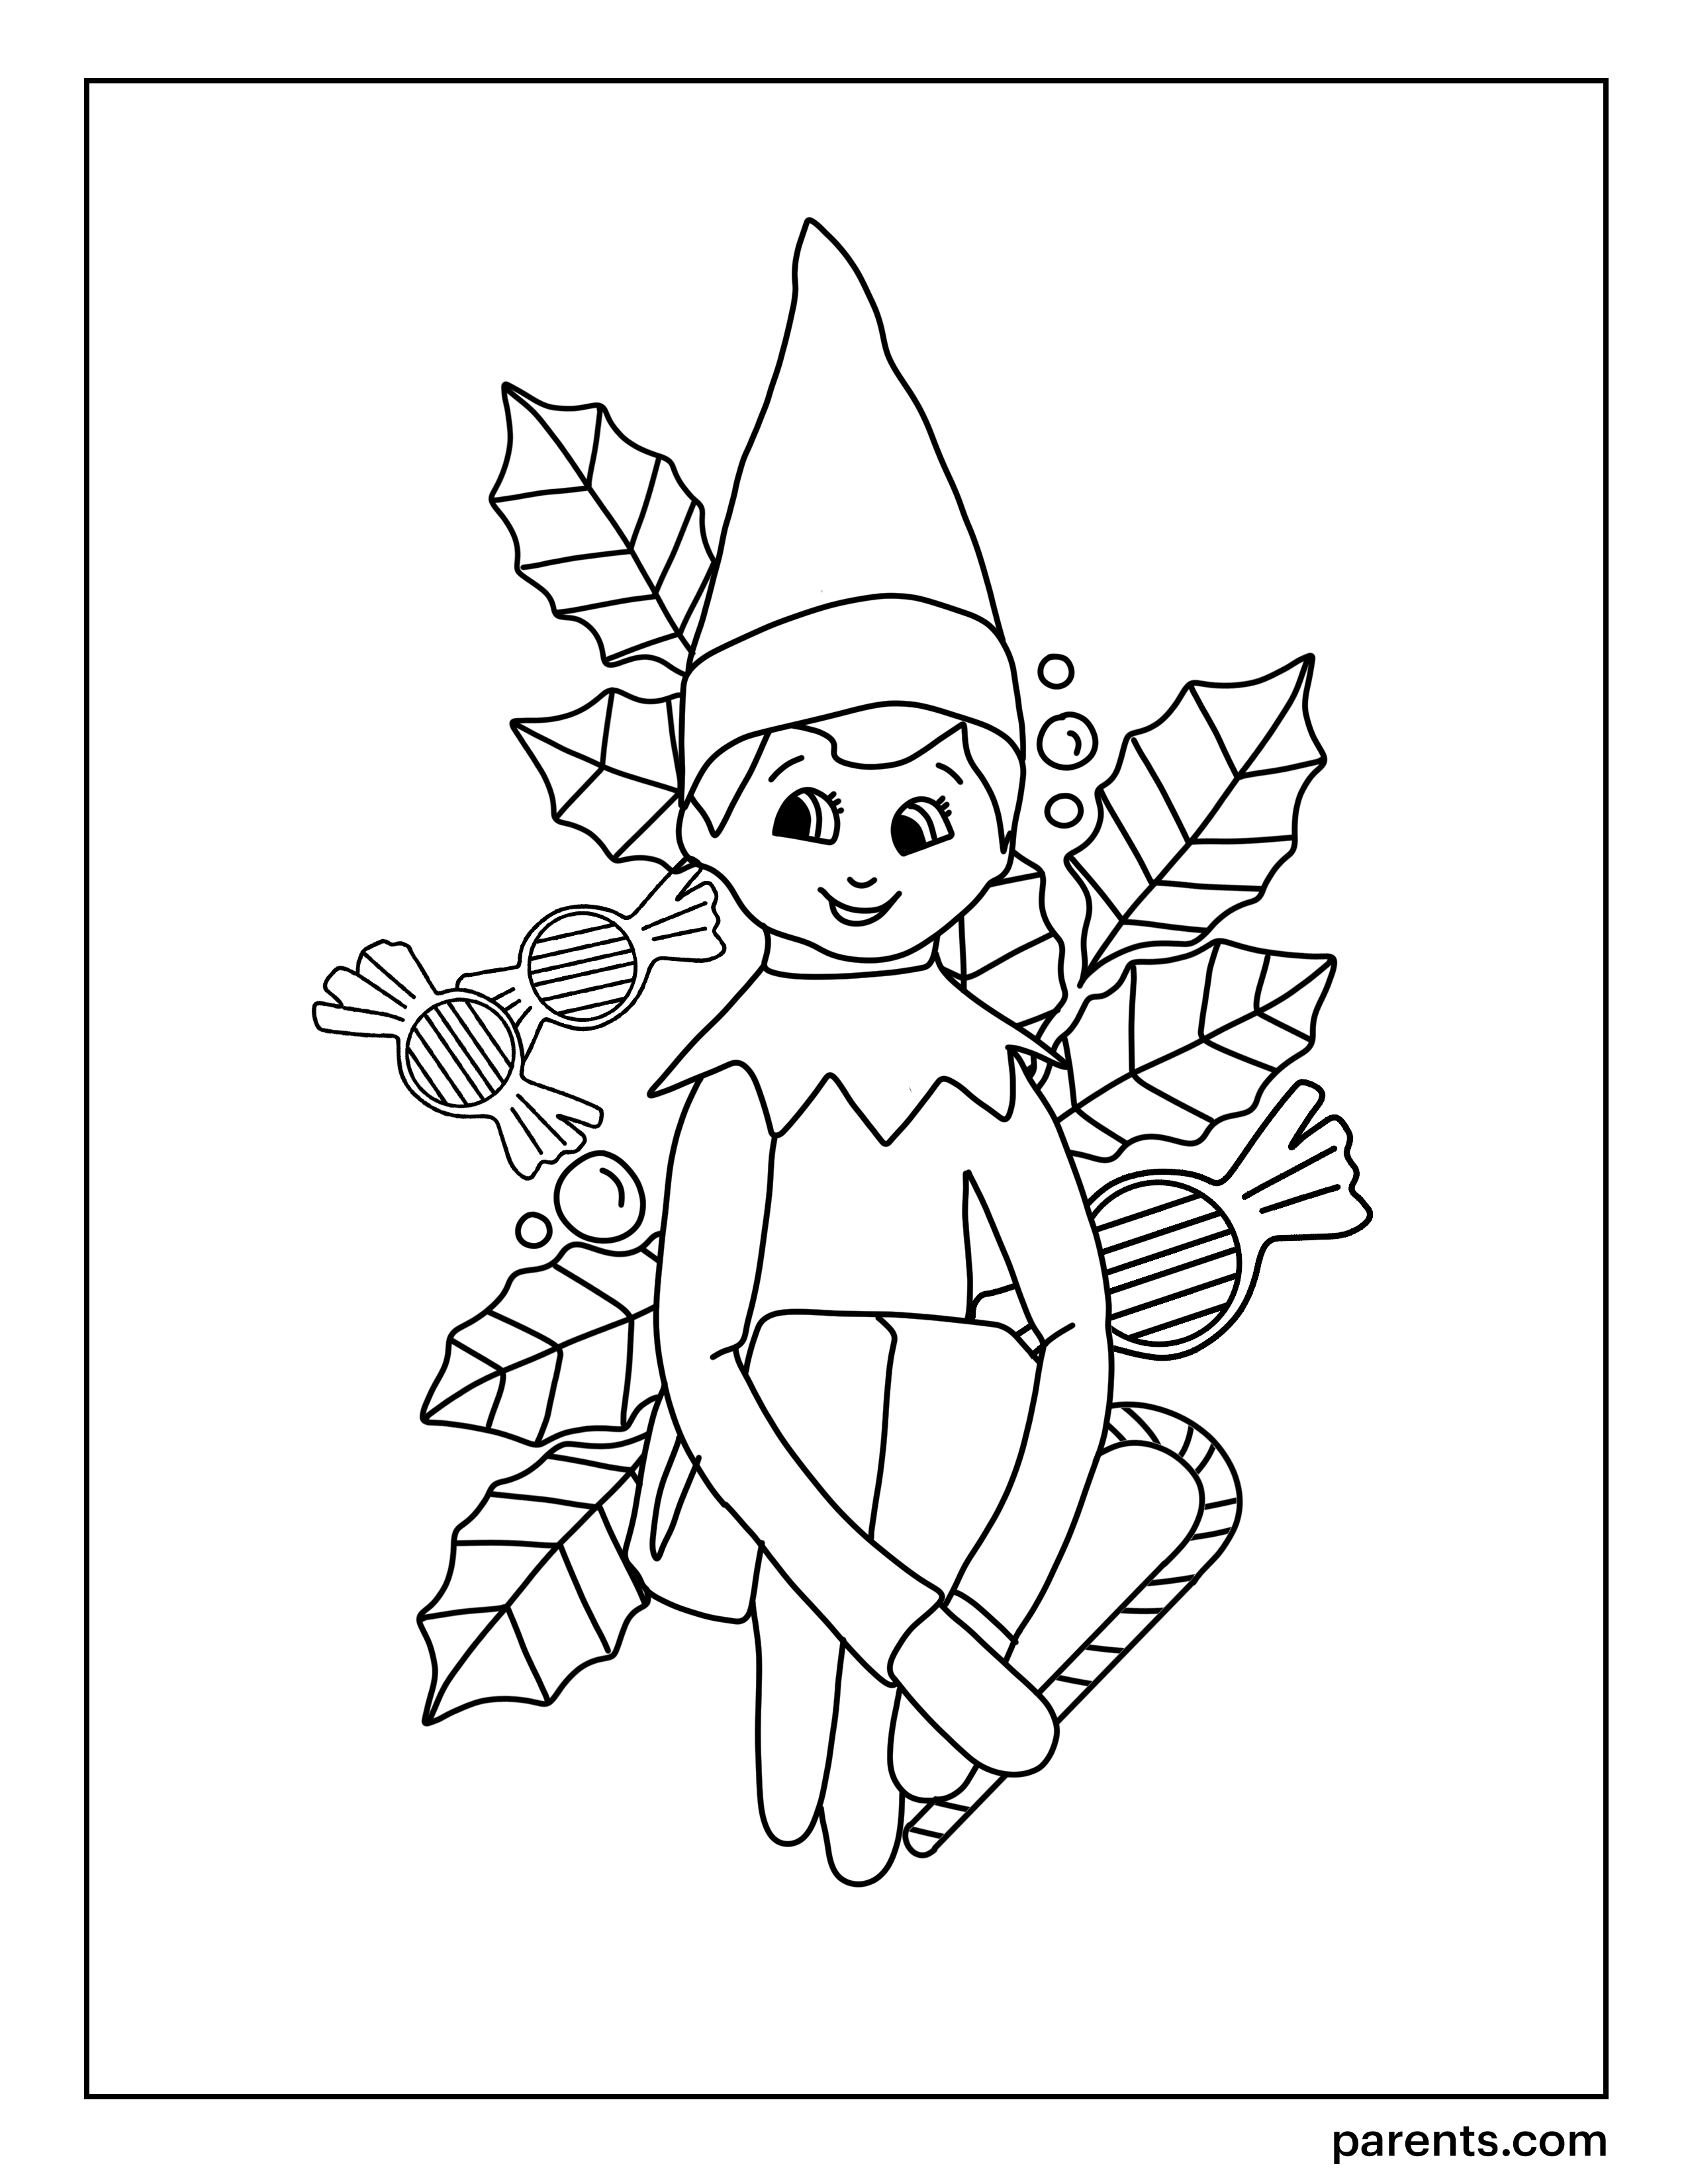 elf on the shelf coloring book all elf on the shelf coloring pages coloring pages for book elf coloring on shelf the